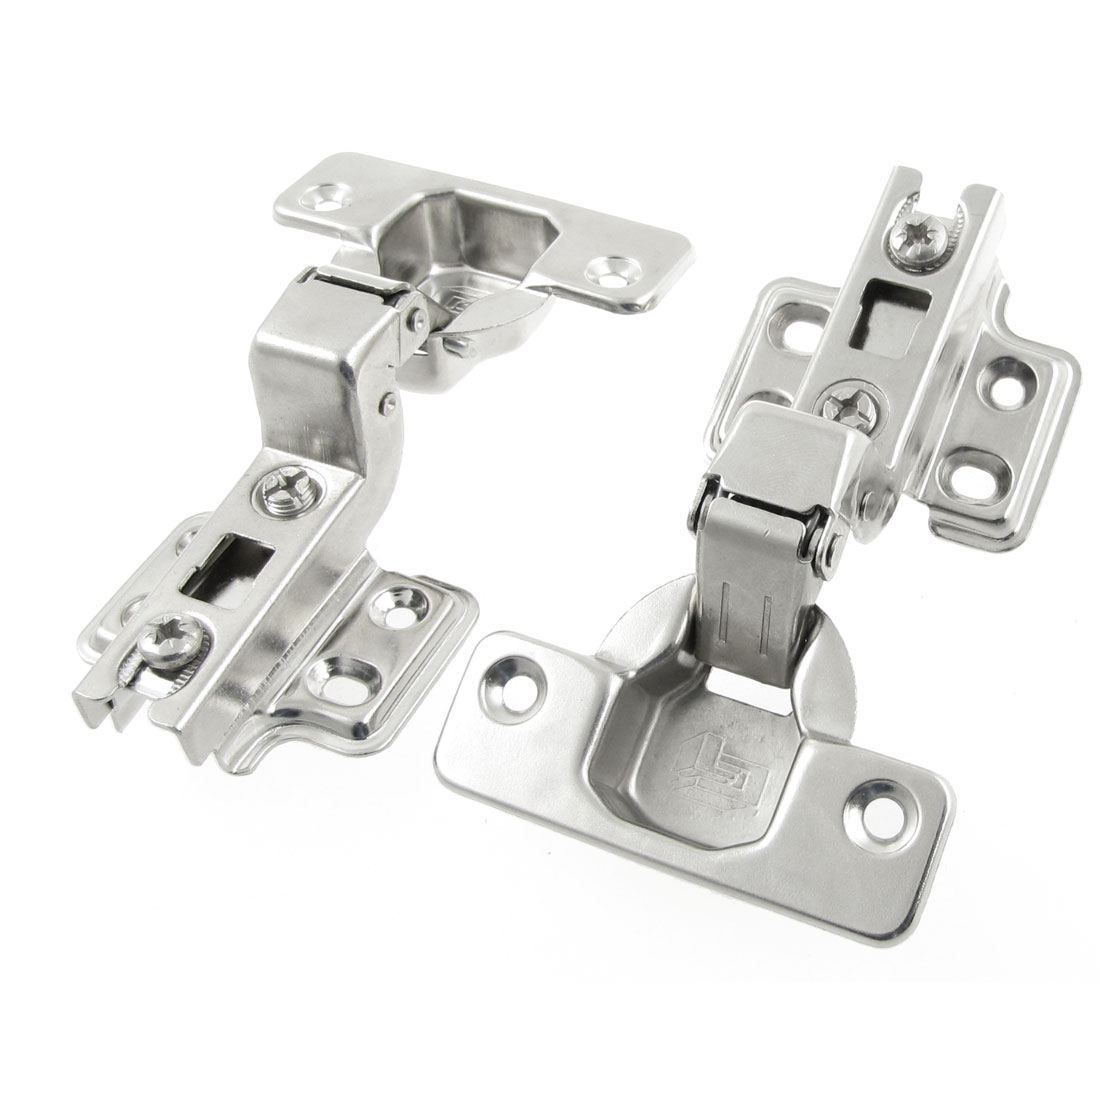 Furniture Hardware Buffer Metal Concealed Cabinet Hinge 2 Pcs